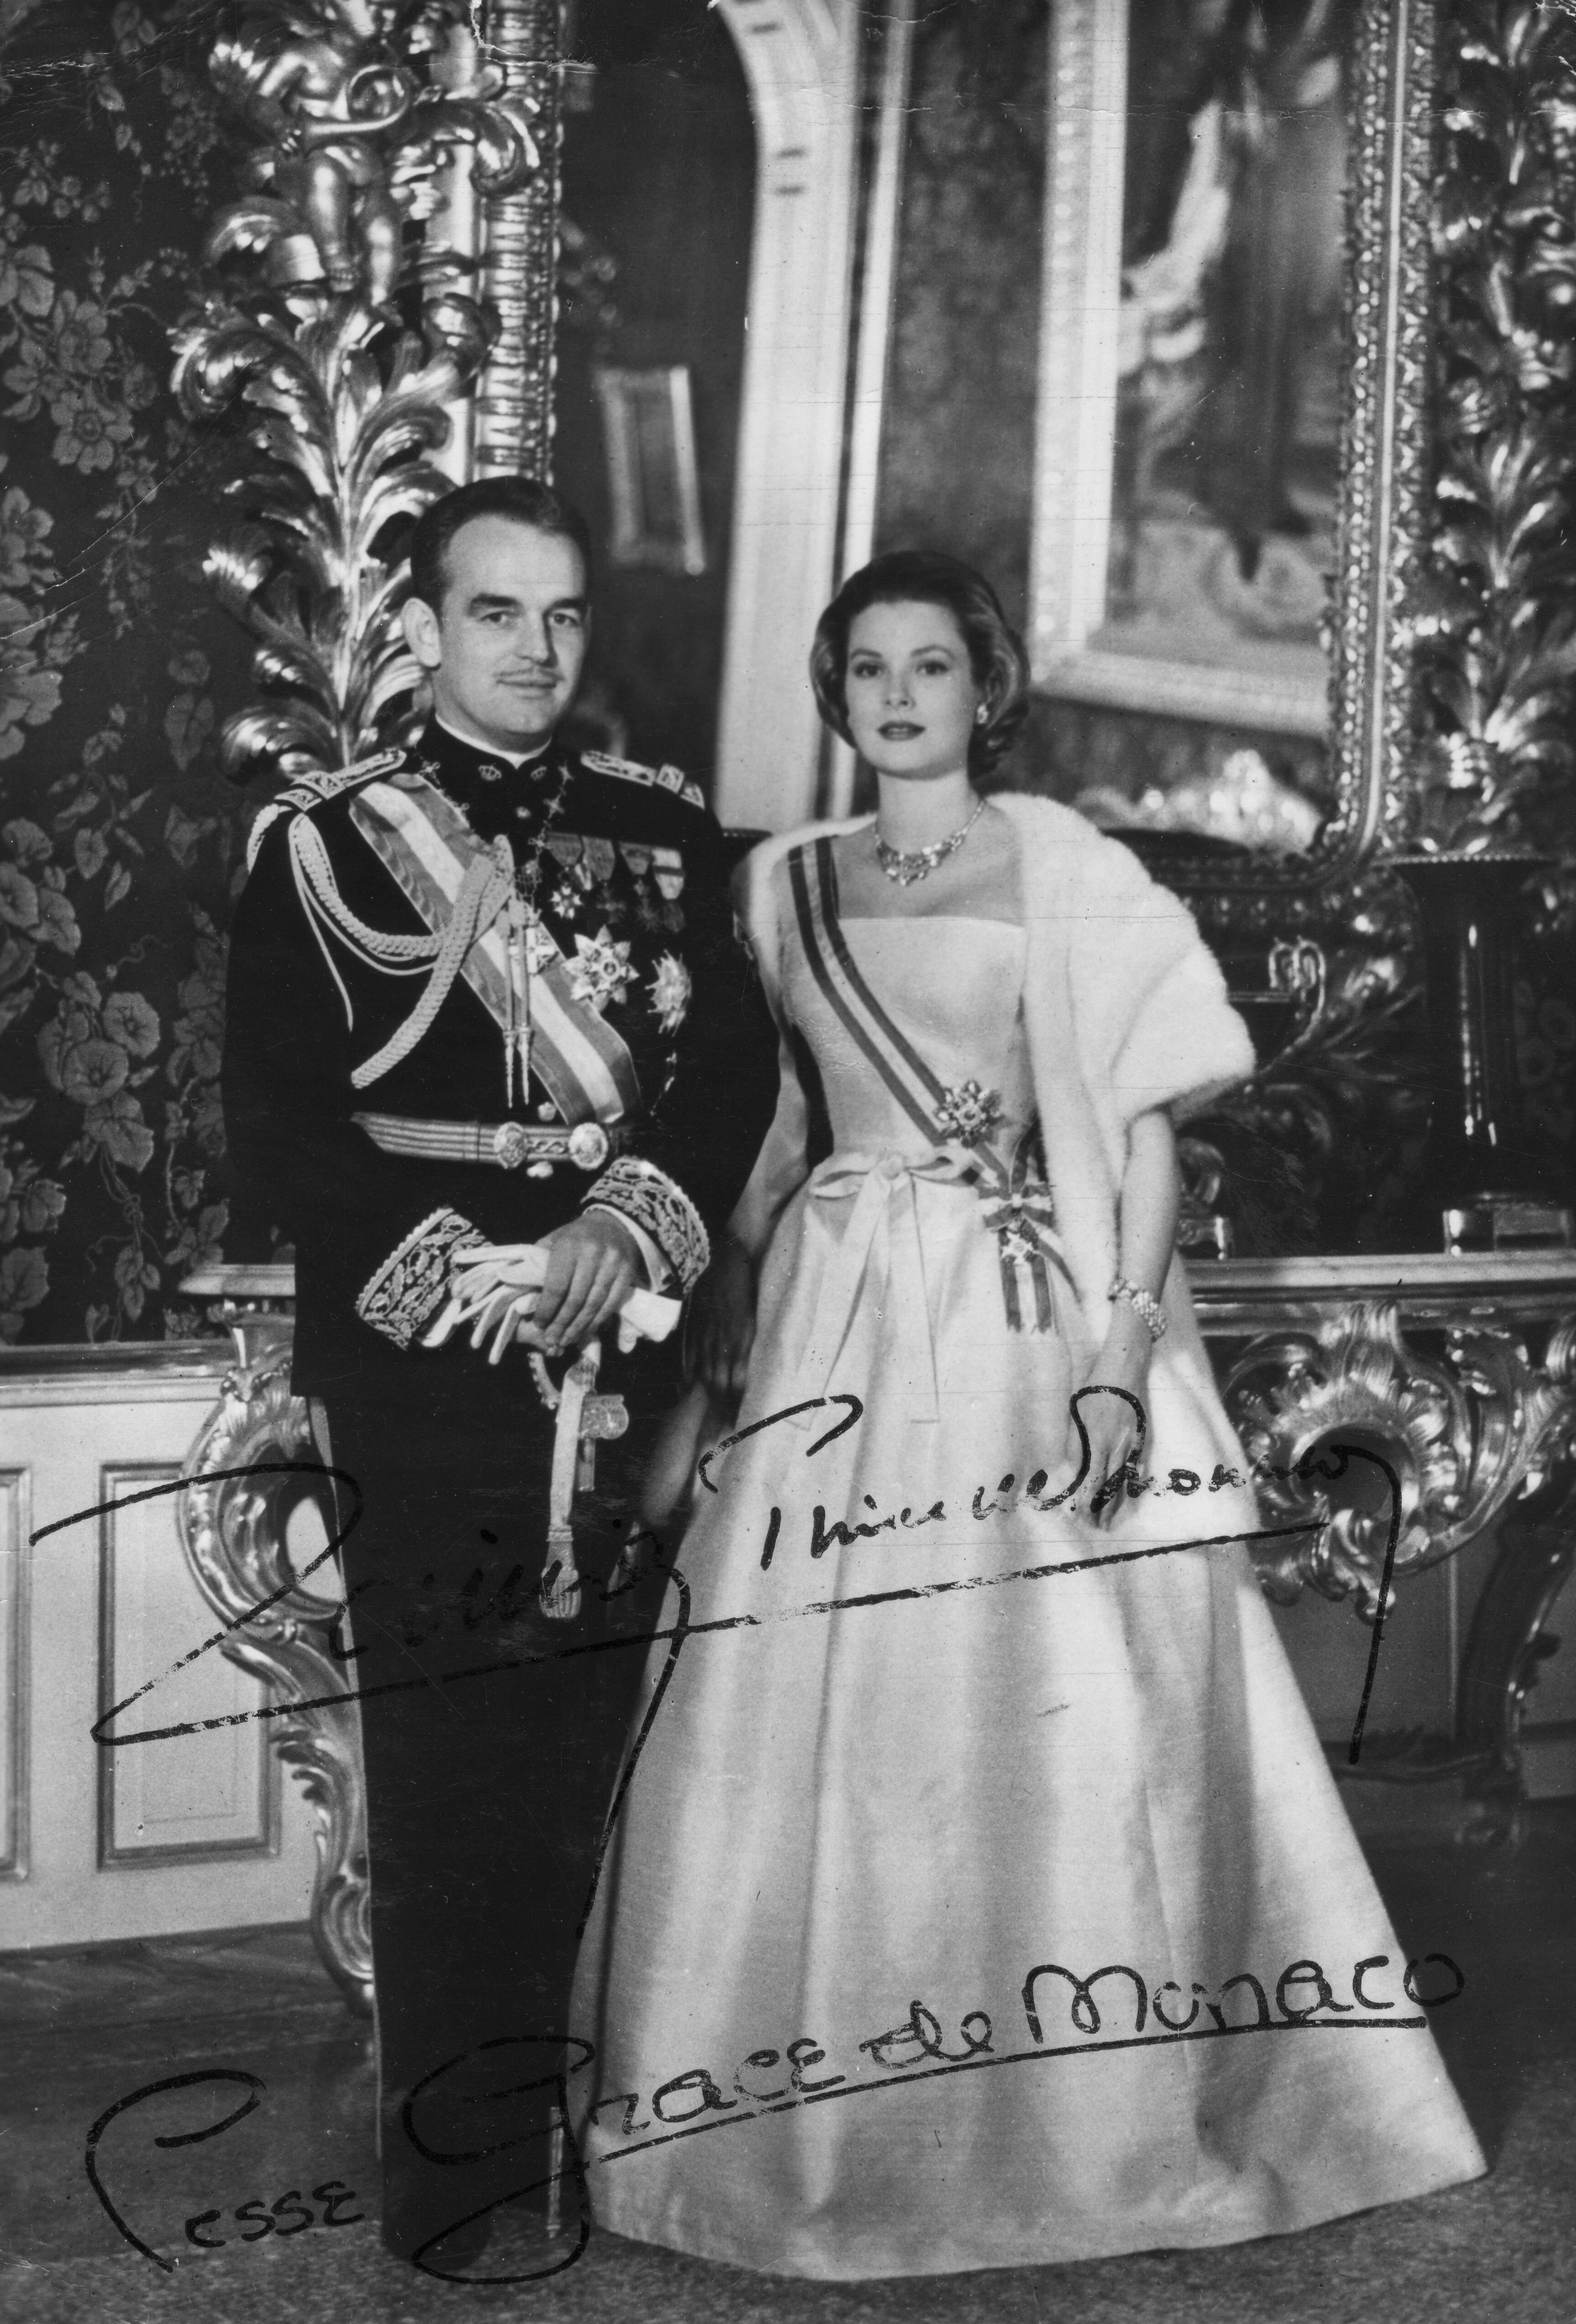 Prince Rainier III and Princess Grace of Monaco -- Official Portrait | Source: Getty Images